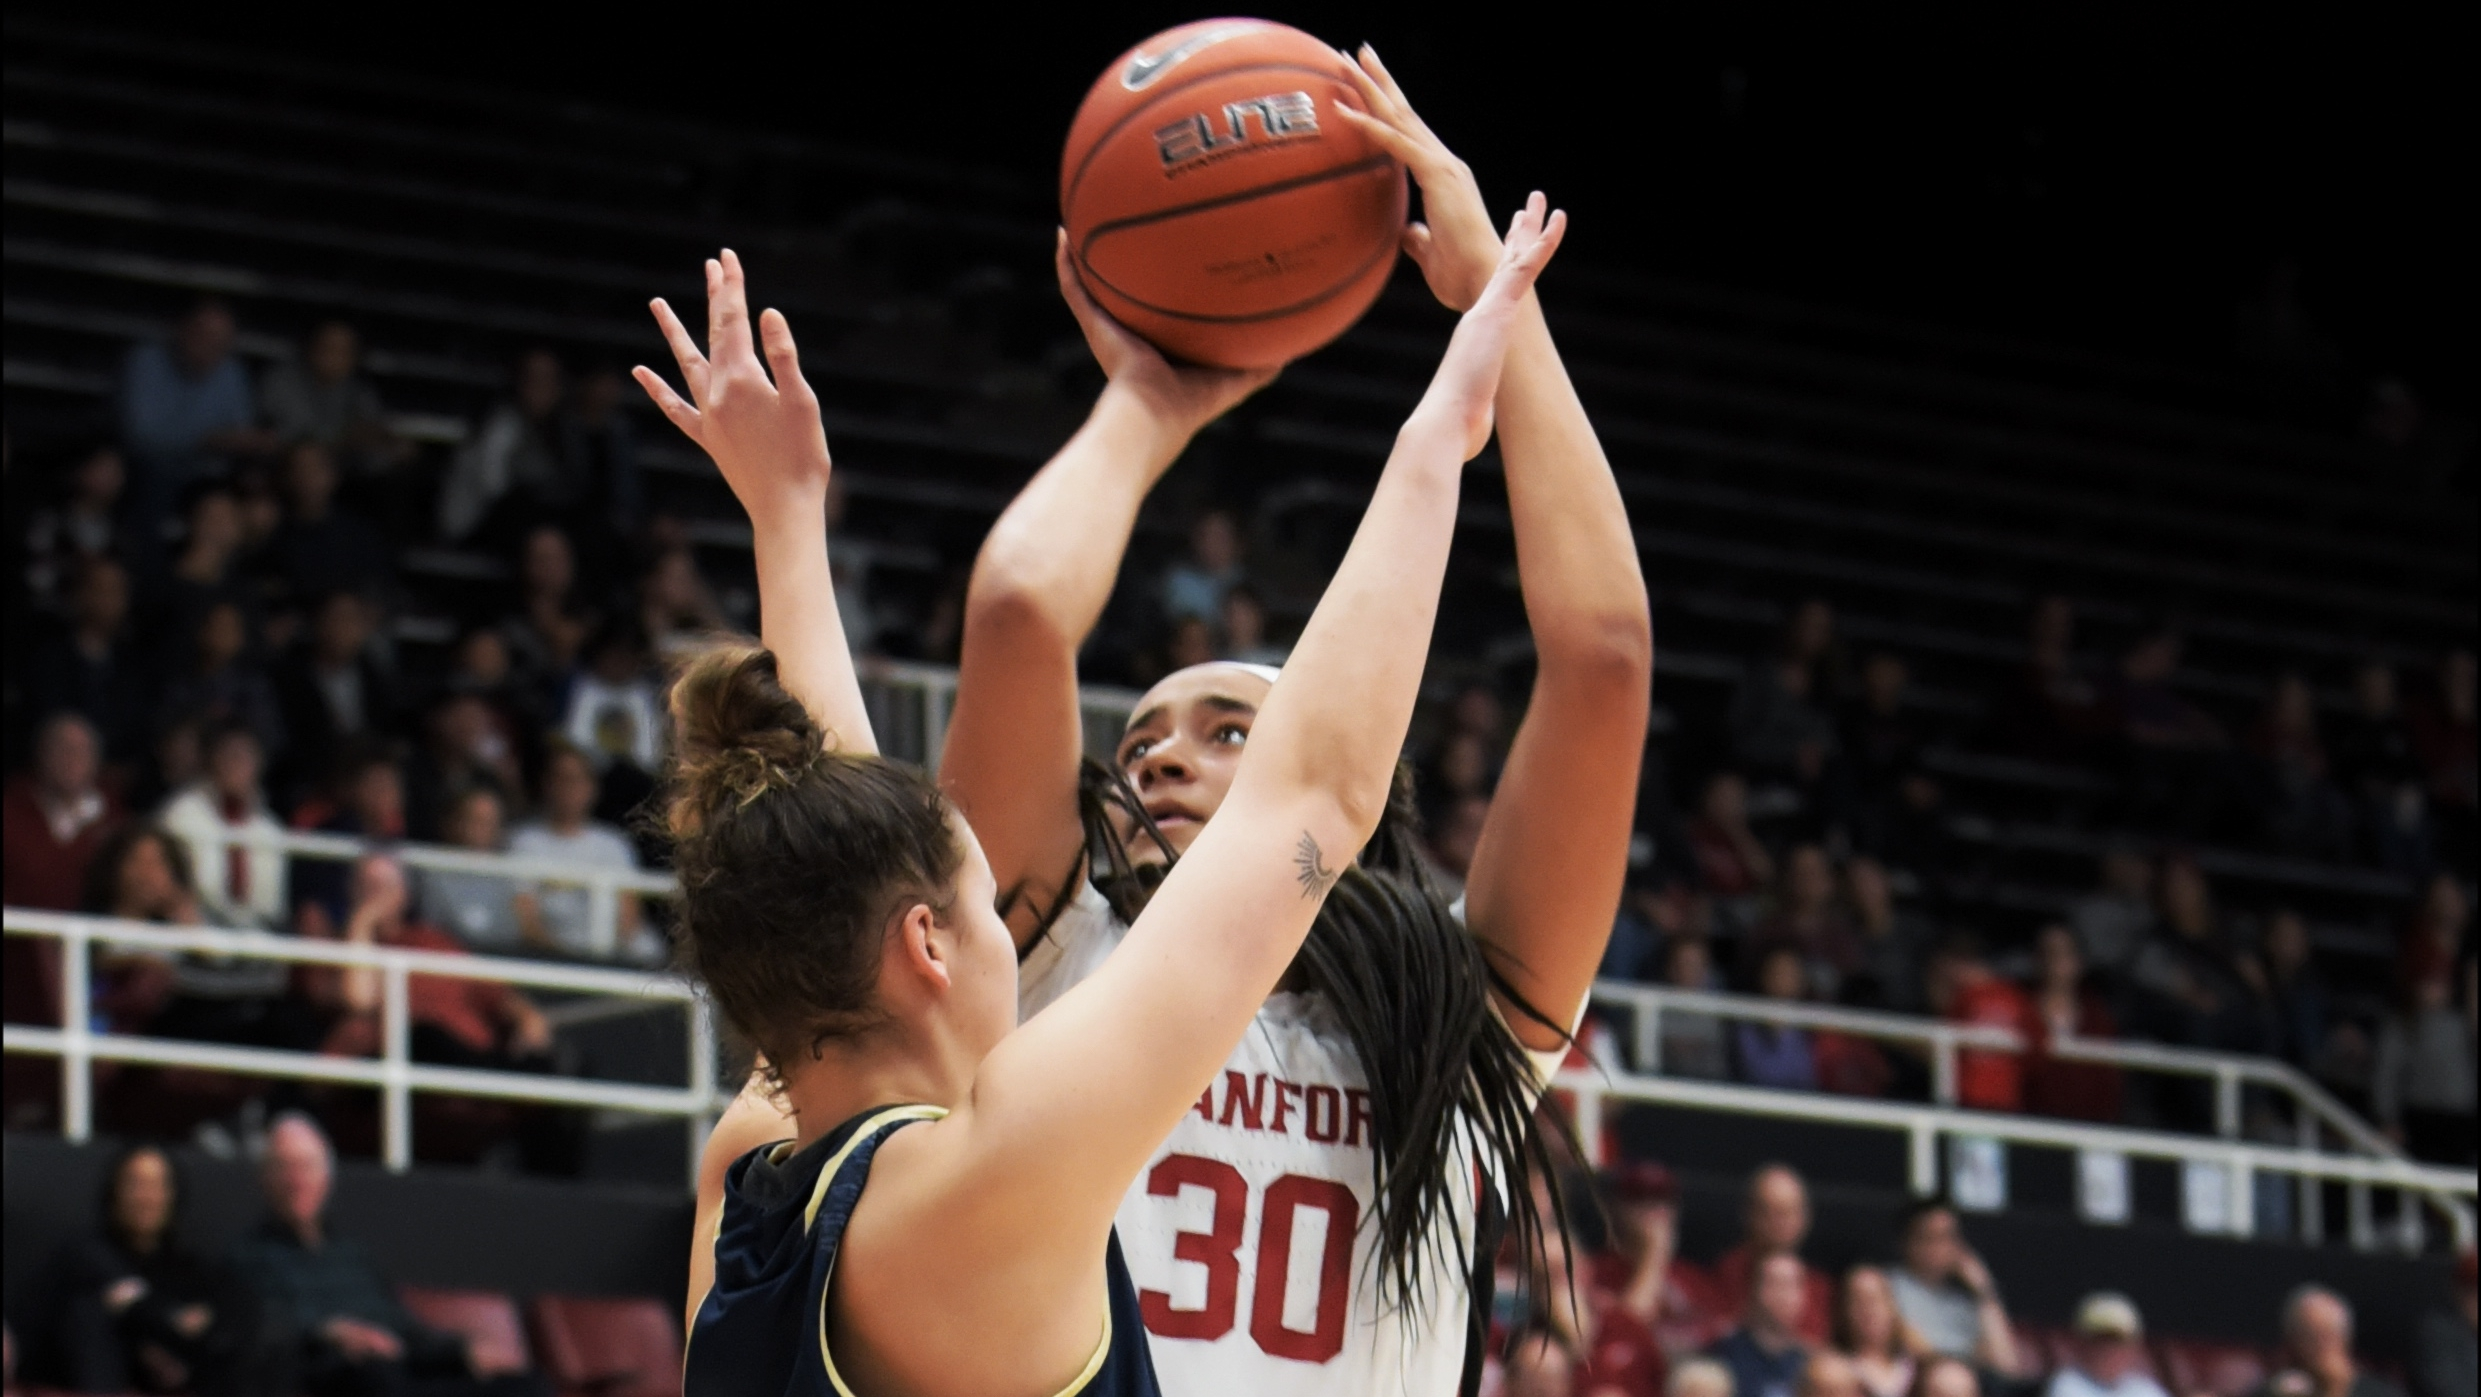 Haley Jones powers Stanford past upset-minded UC Davis, 67-55, with double-double